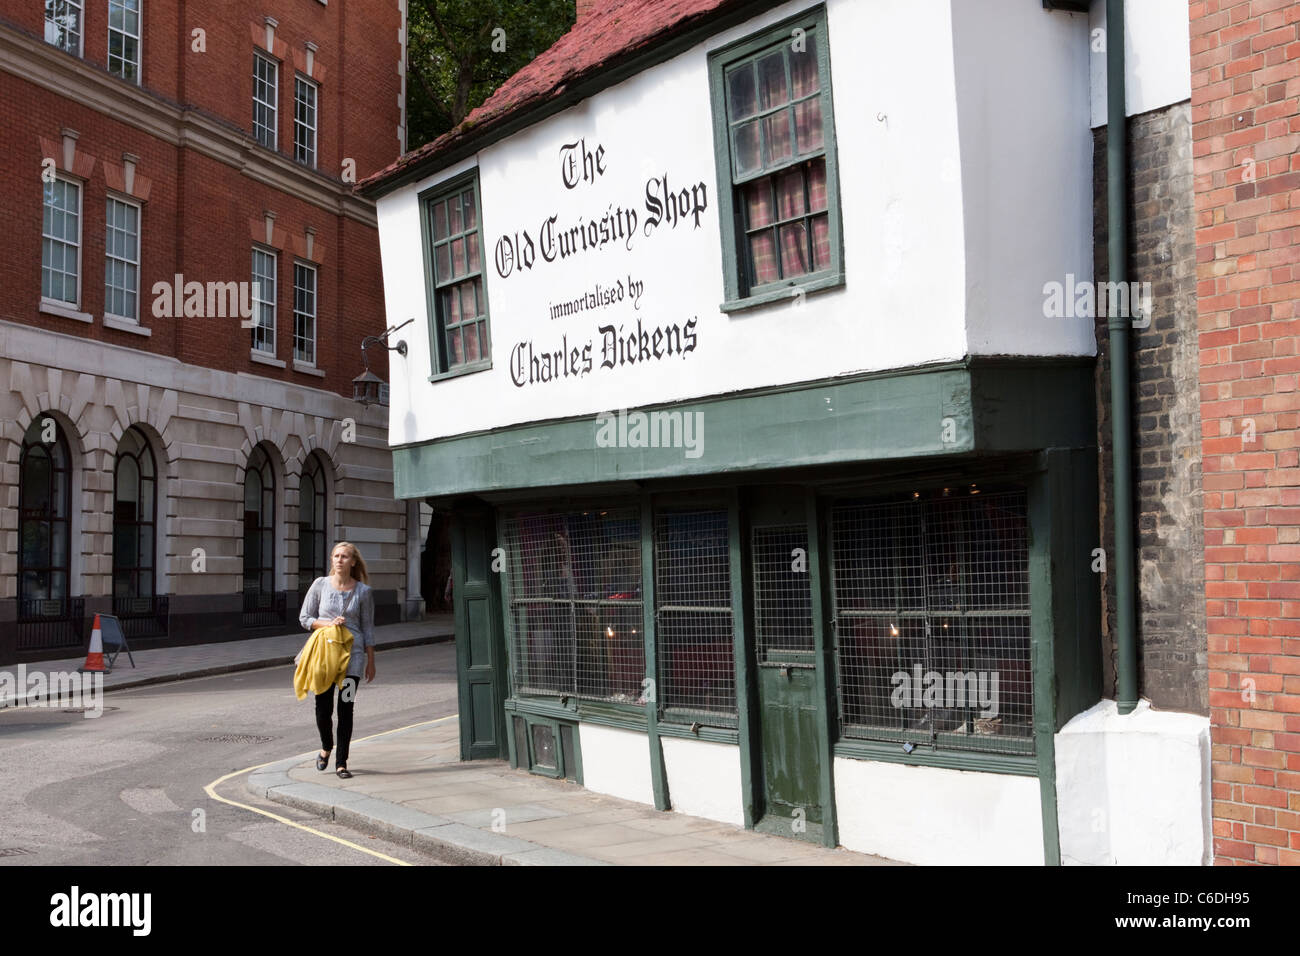 The Old Curiosity Shop, made famous by Charles Dickens, Portsmouth Street, Holborn, London, England, UK - Stock Image